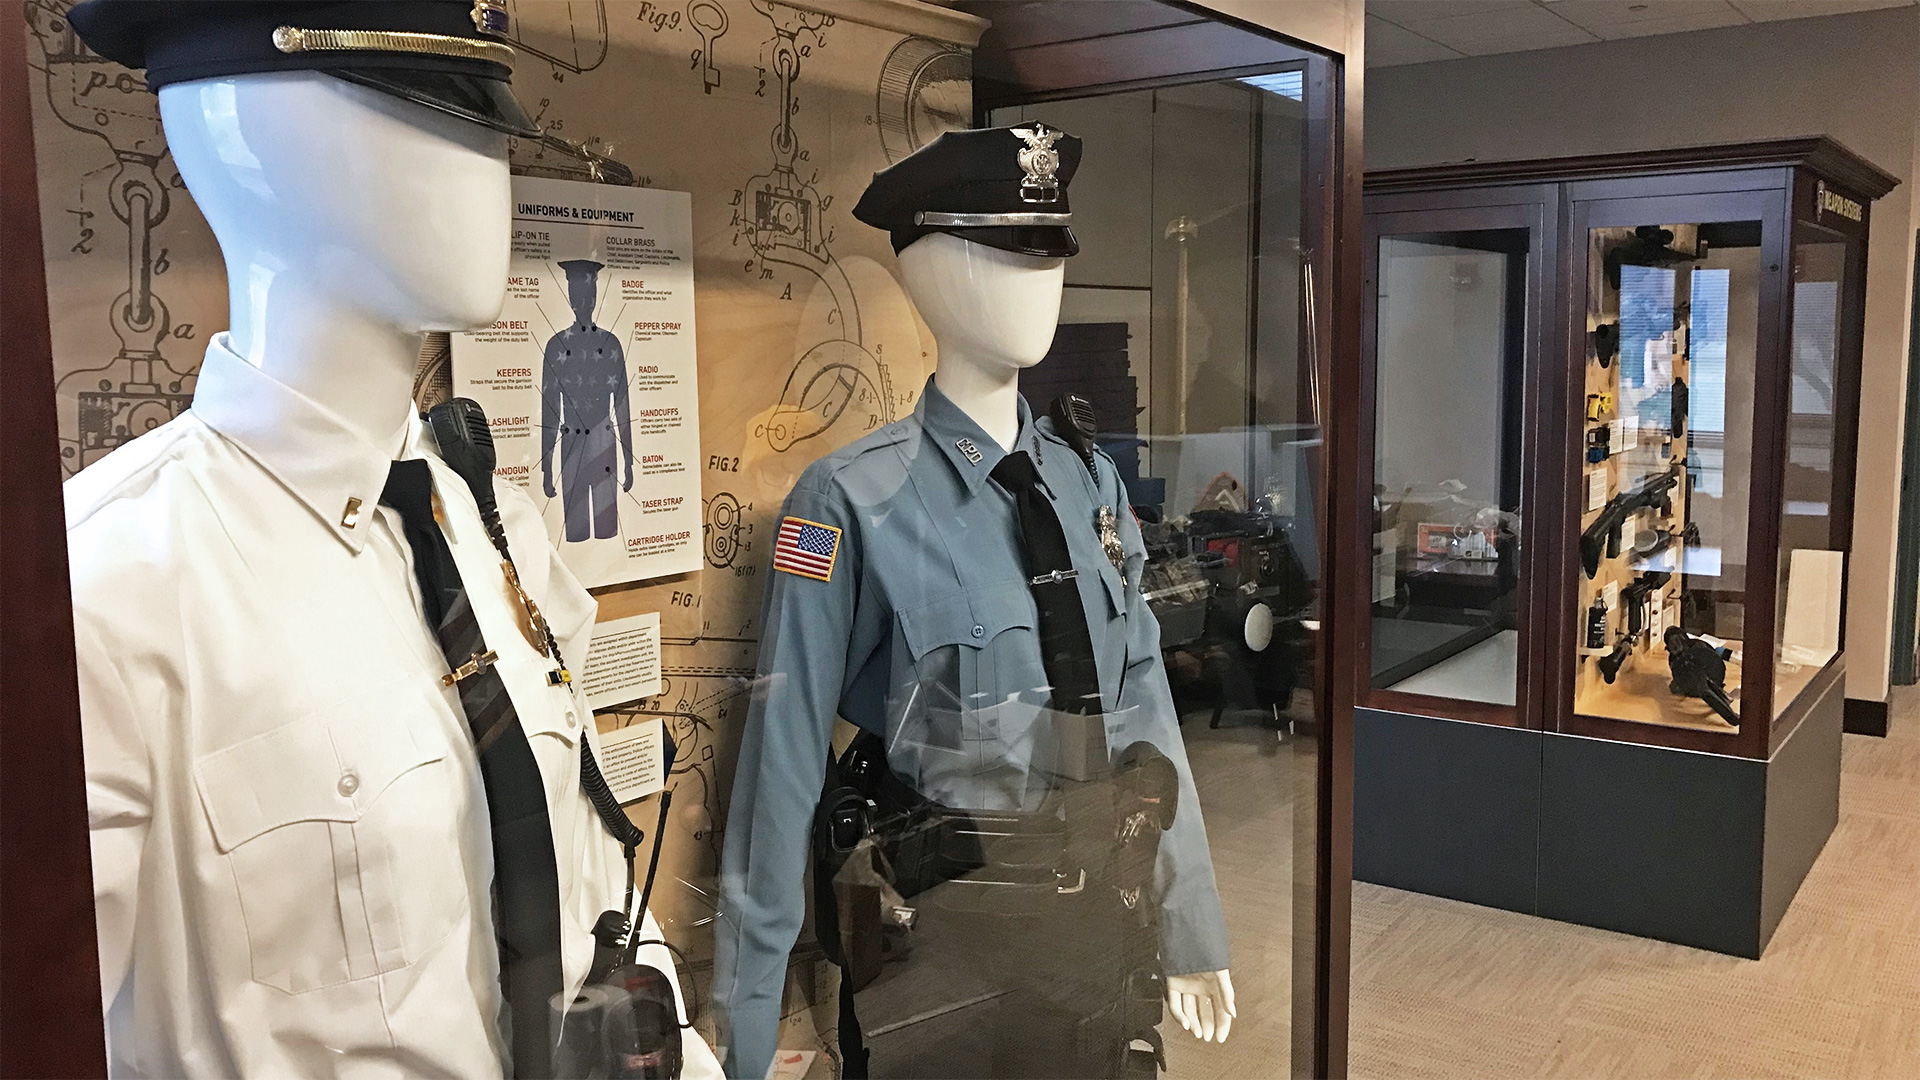 The start of the Cheektowaga PD police history museum includes exhibit design centered around uniforms and equipment, and firearms